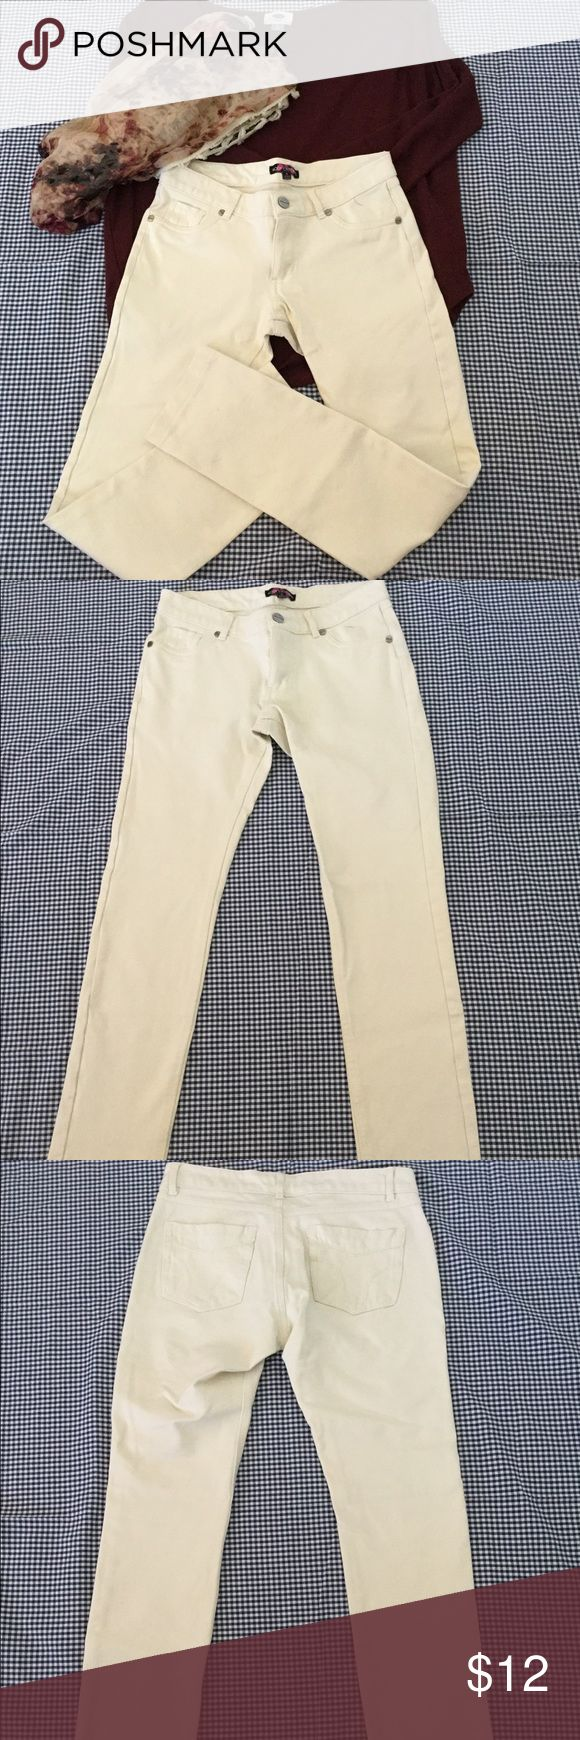 Body Central Skinny Pants Skinny pants from Body Central. Size S Body Central Pants Skinny